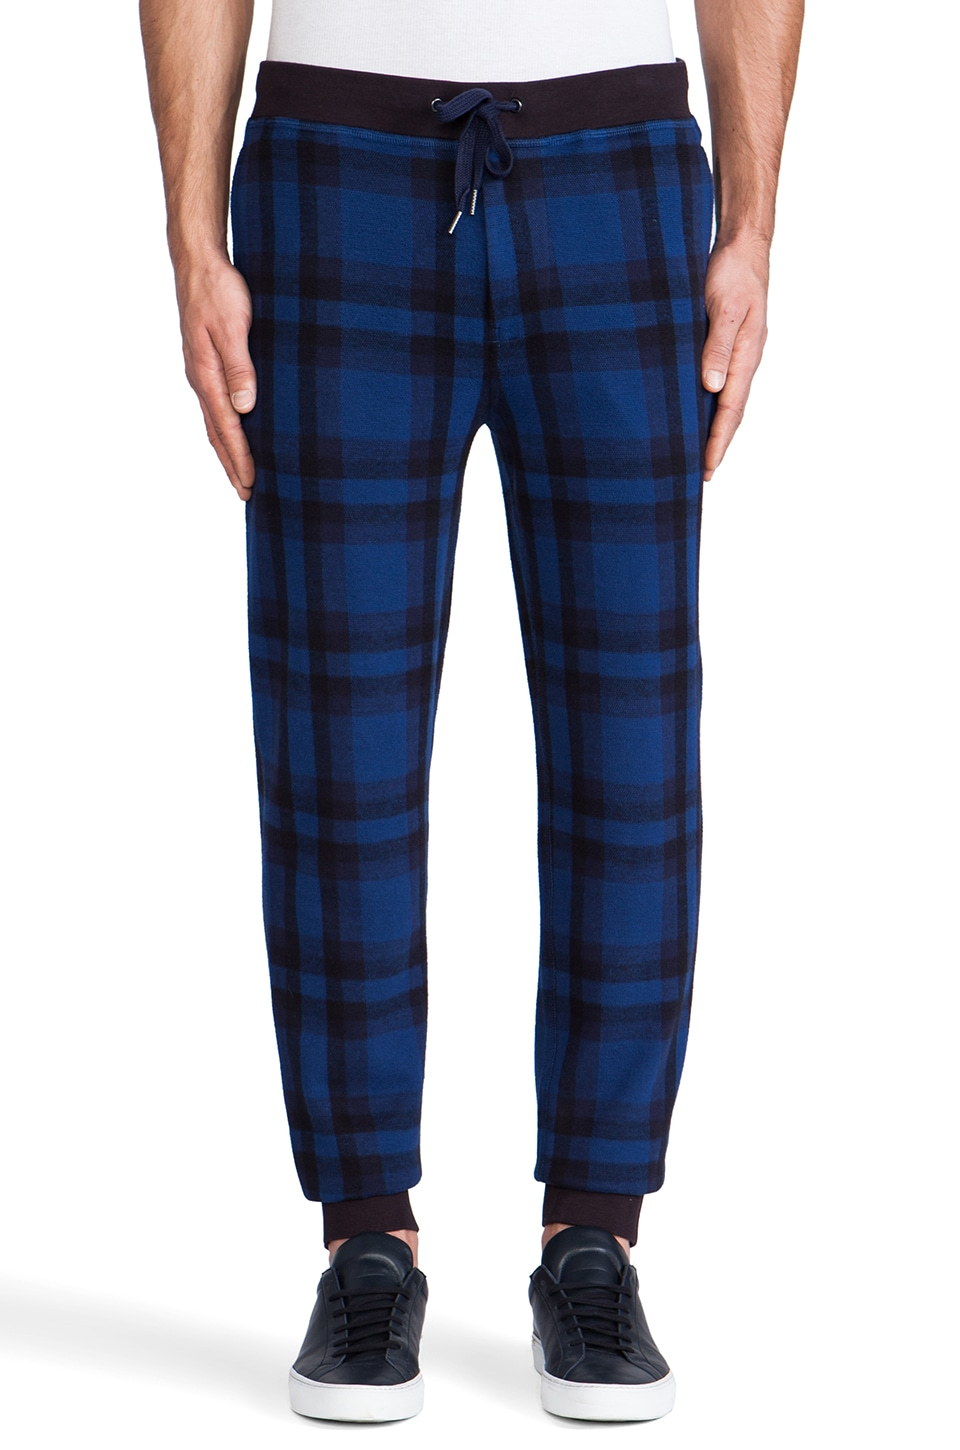 Marc by Marc Jacobs Sheffield Plaid Sweatpant in Icelandic Blue Multi